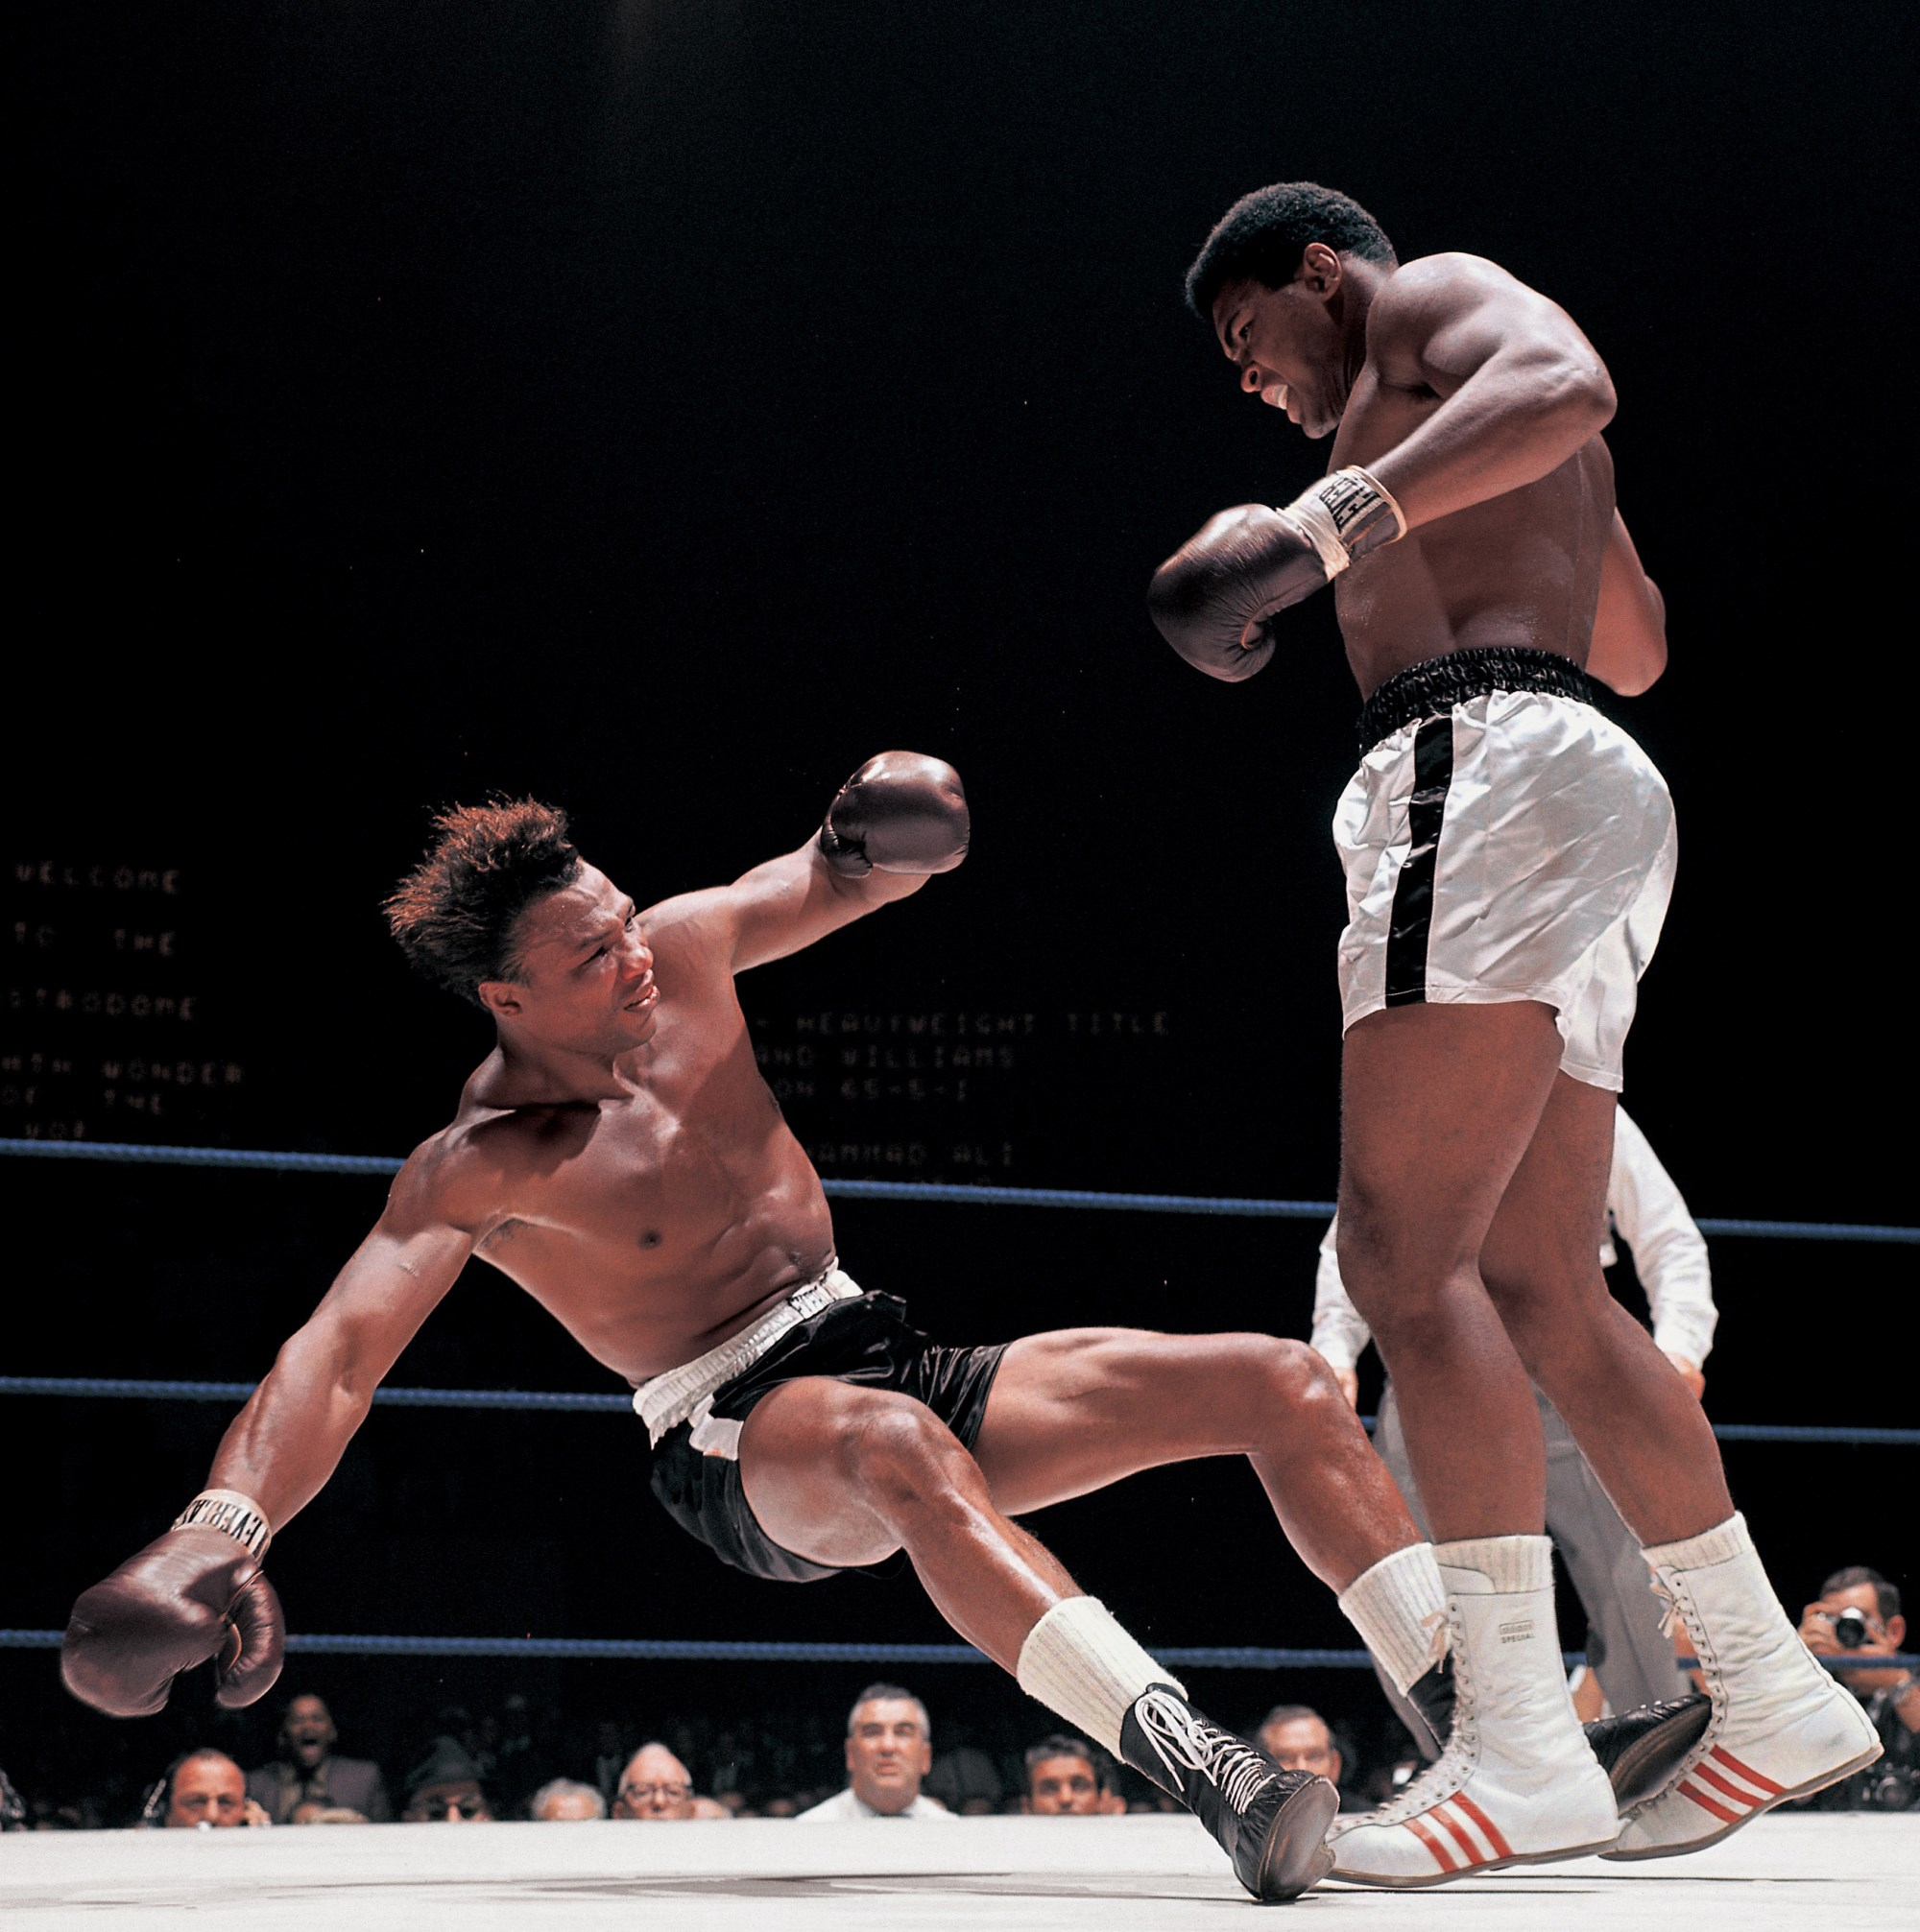 x-px-muhammad-ali-1080p-high-quality-by-Beatrice-Edwards-wallpaper-wp3801019